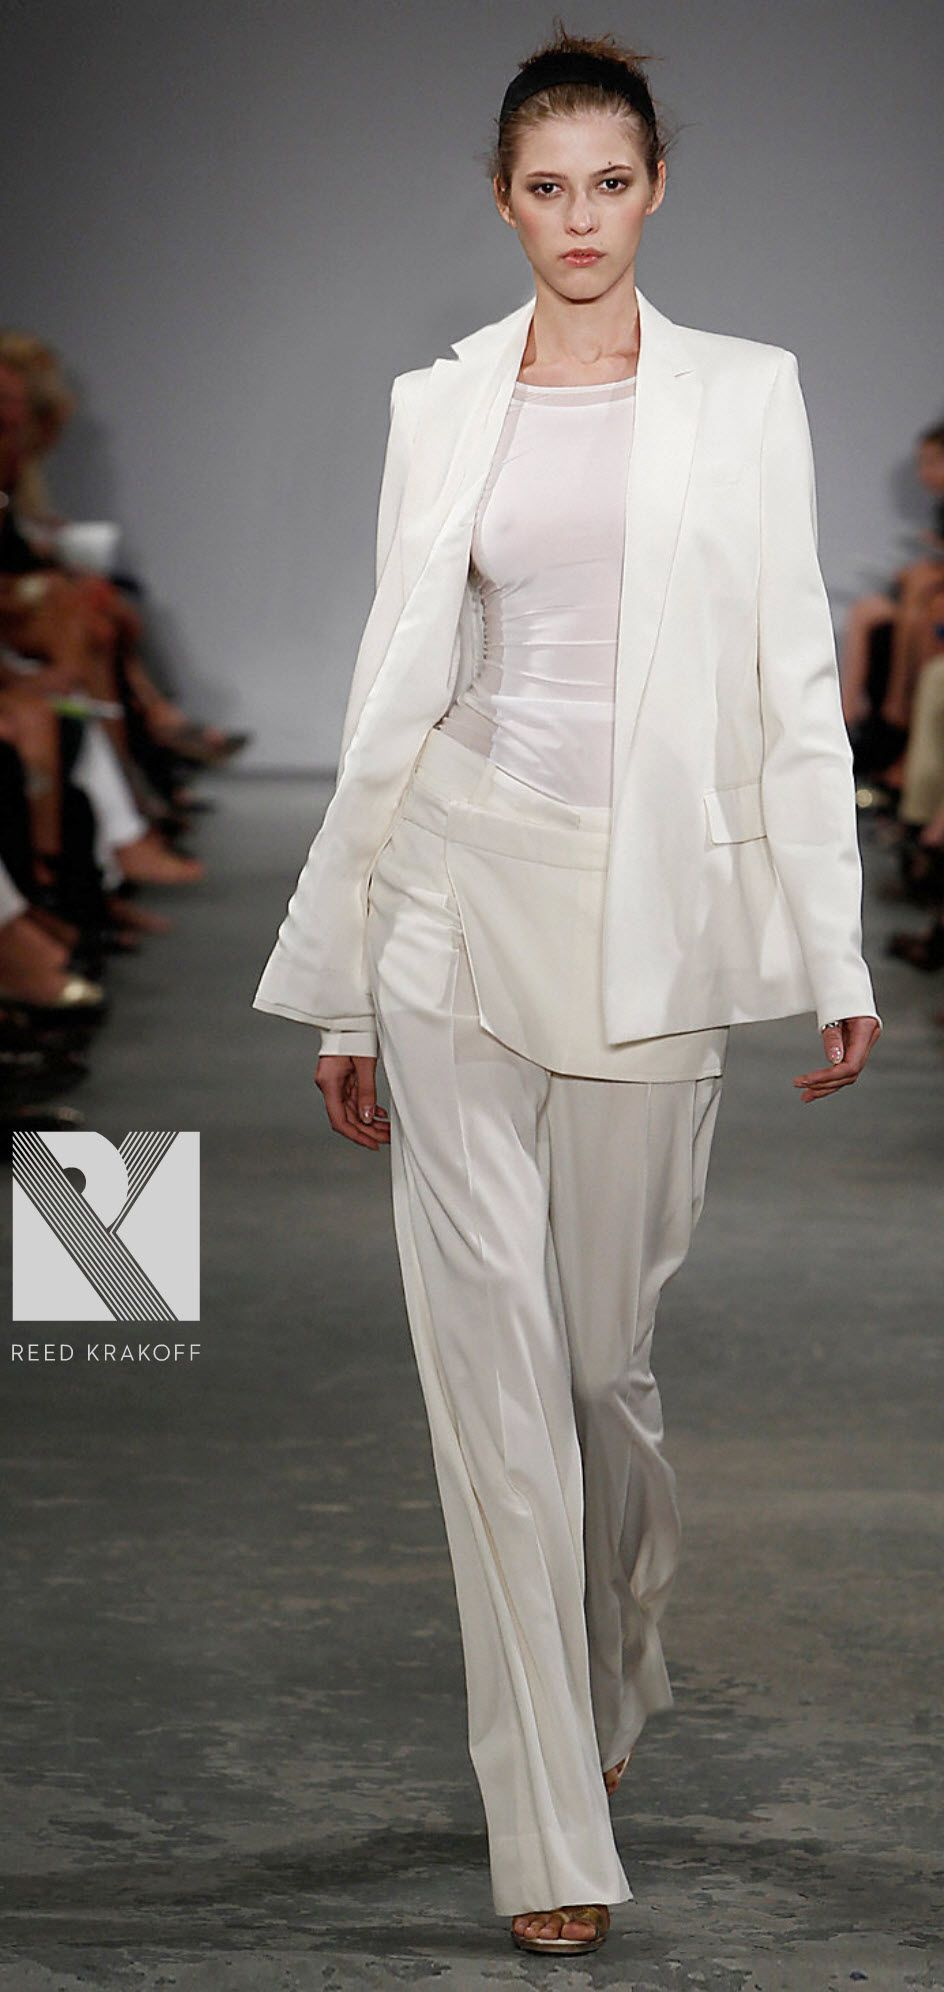 white-tailored-suit-bridal-style-trends-reed-krakoff.jpg (944×1992 ...